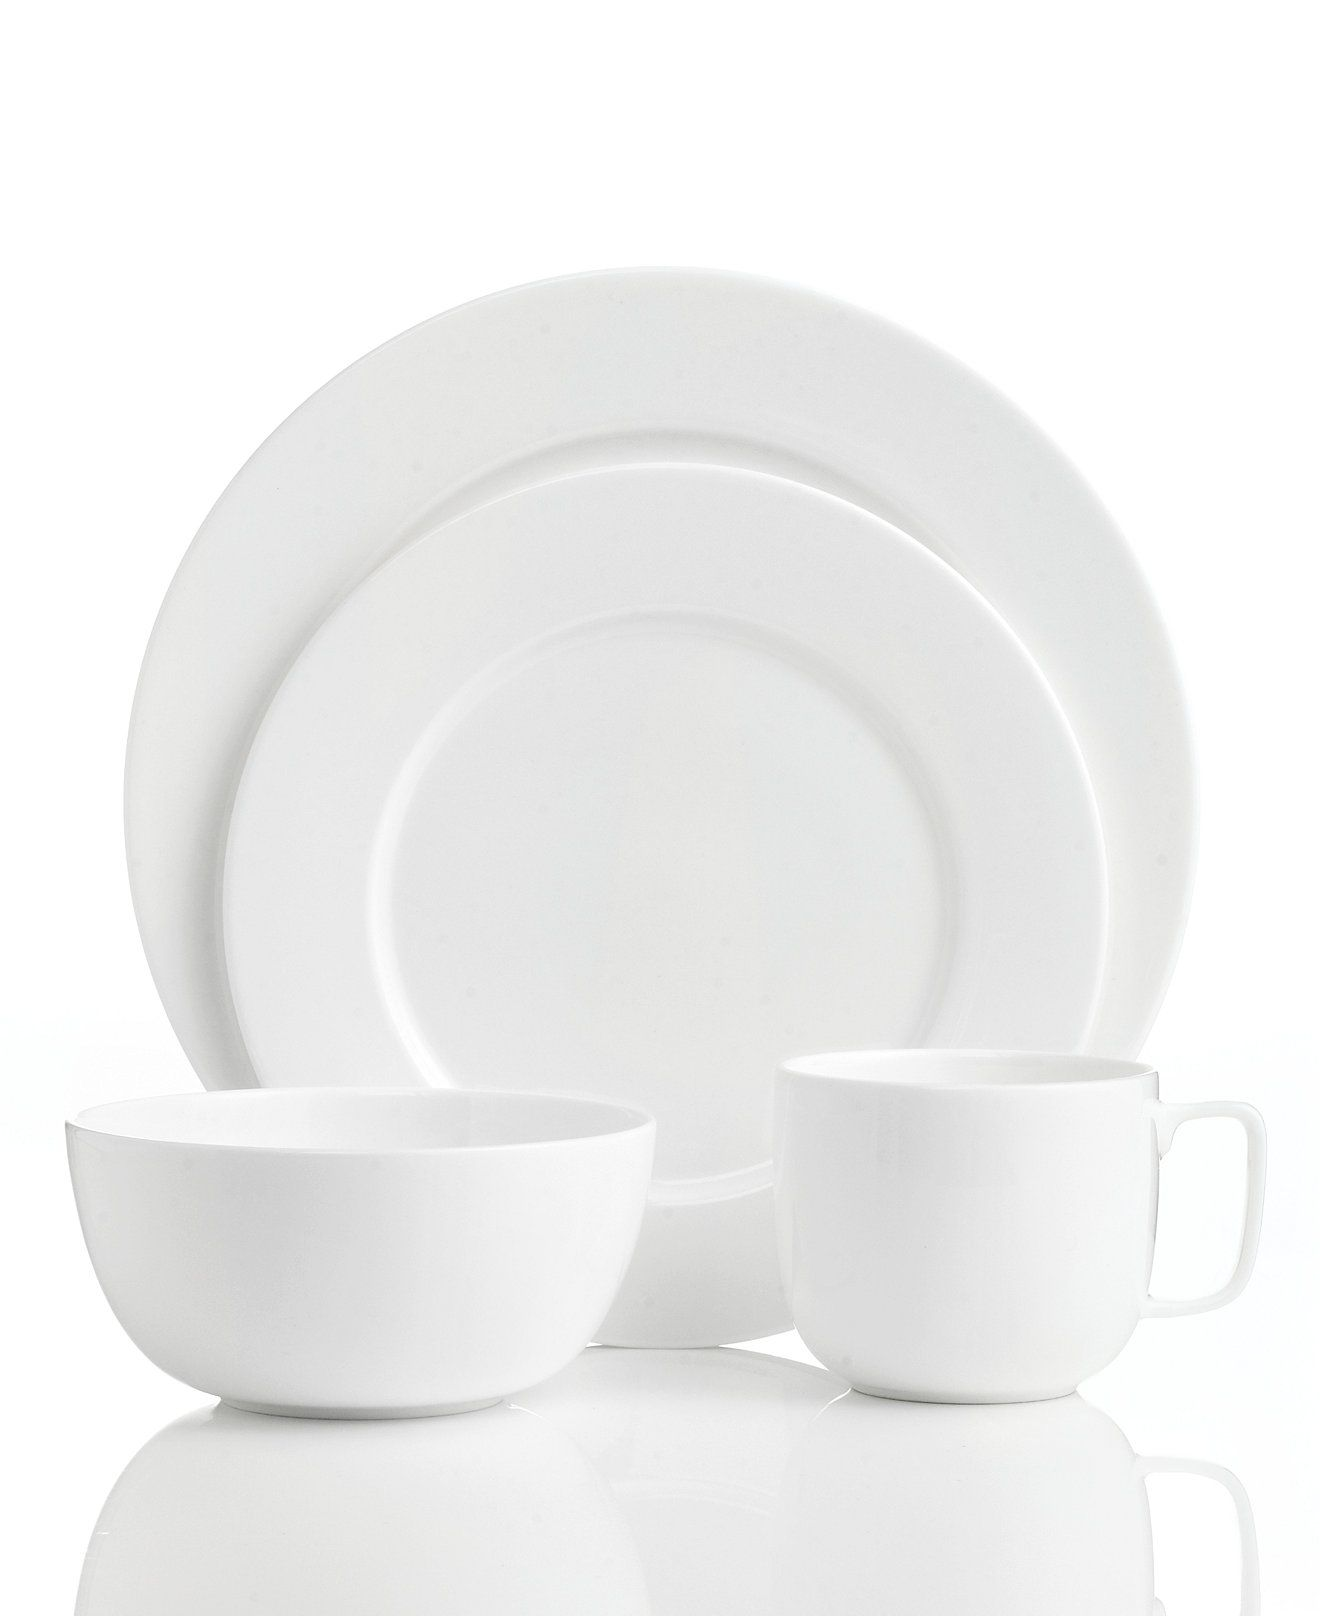 Bone China Coupe Salad Plate Hotel Collection Dinnerware